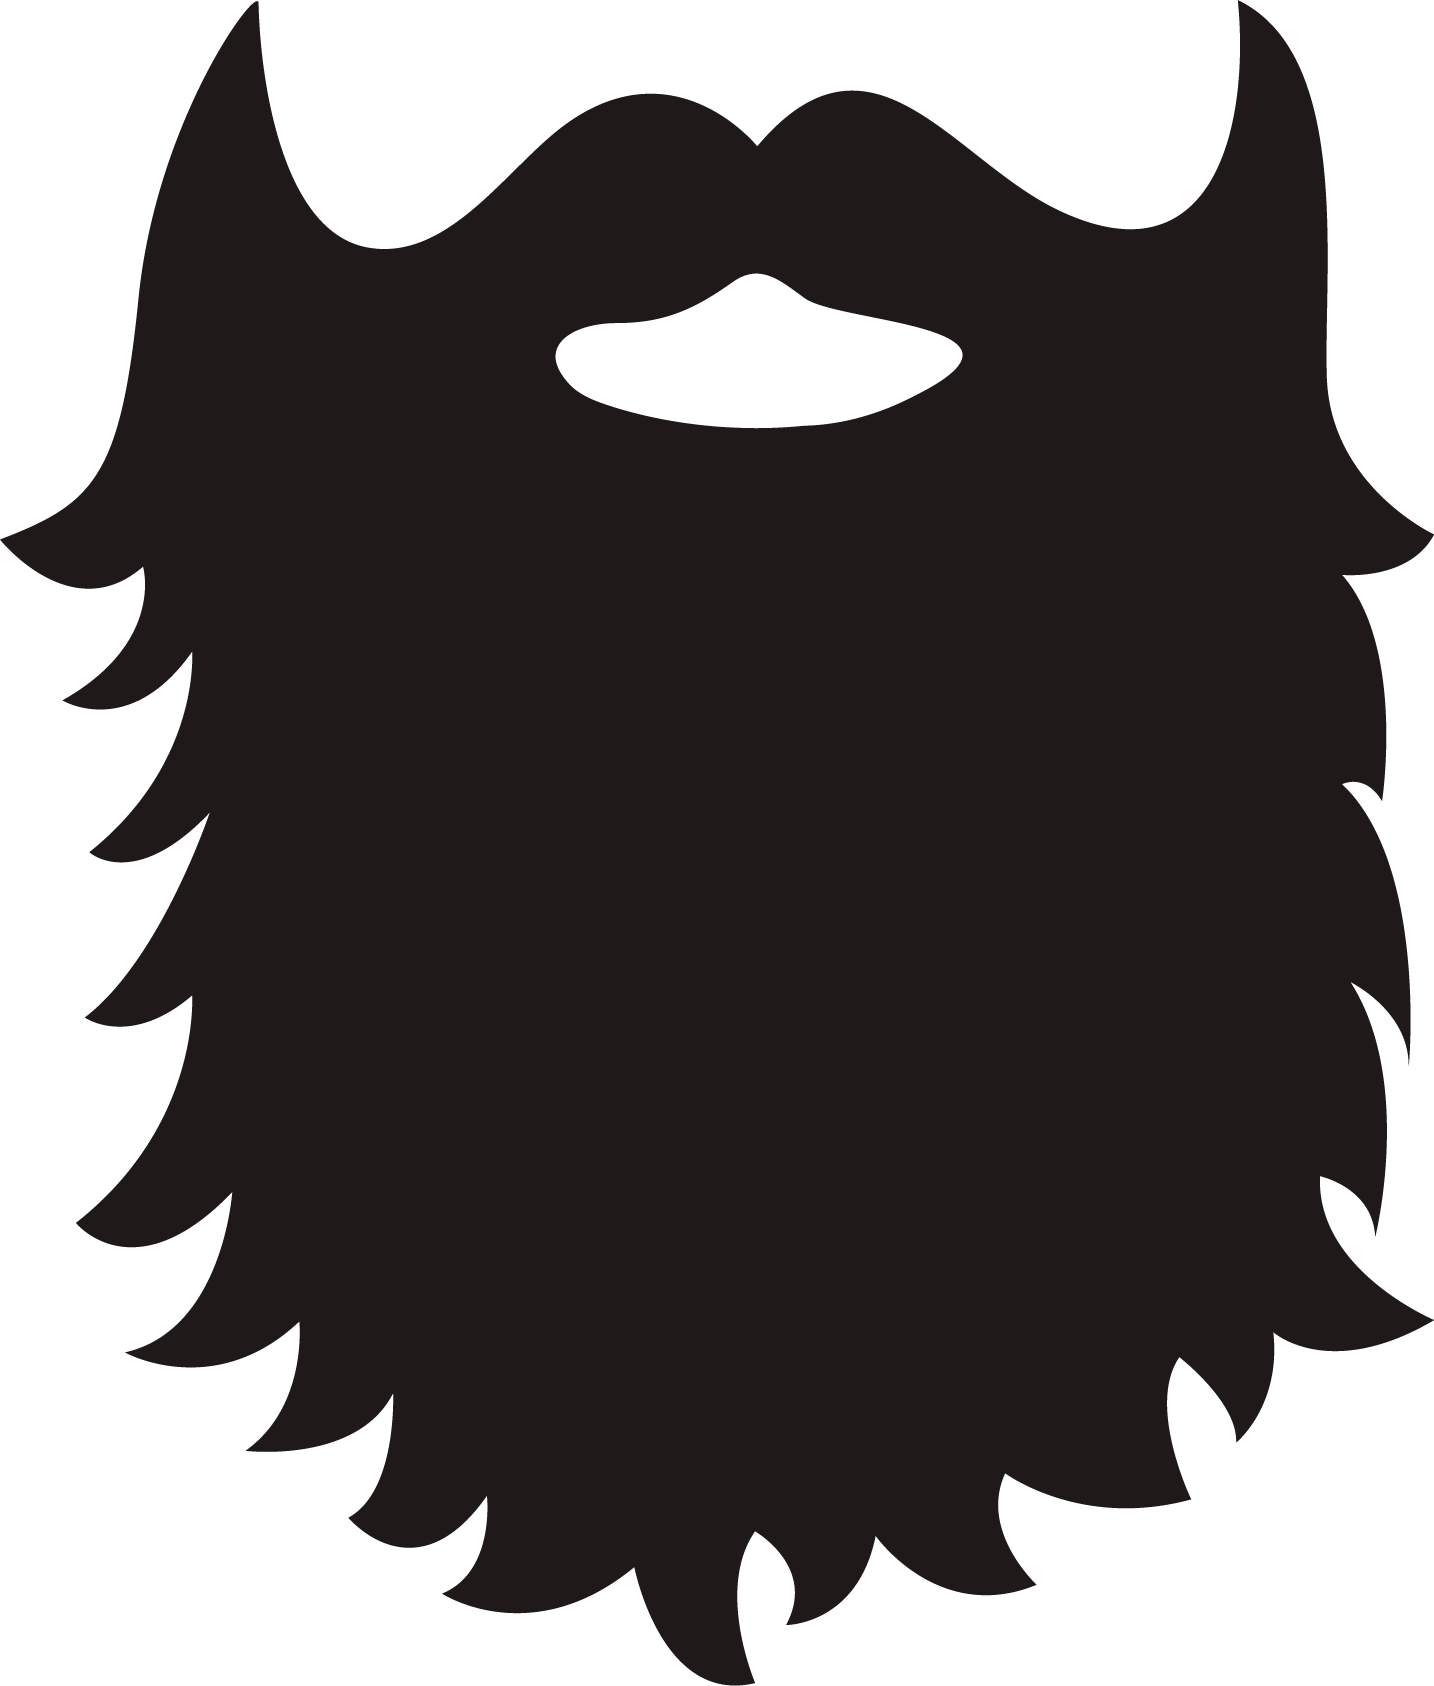 Beard real. Clipart free download best